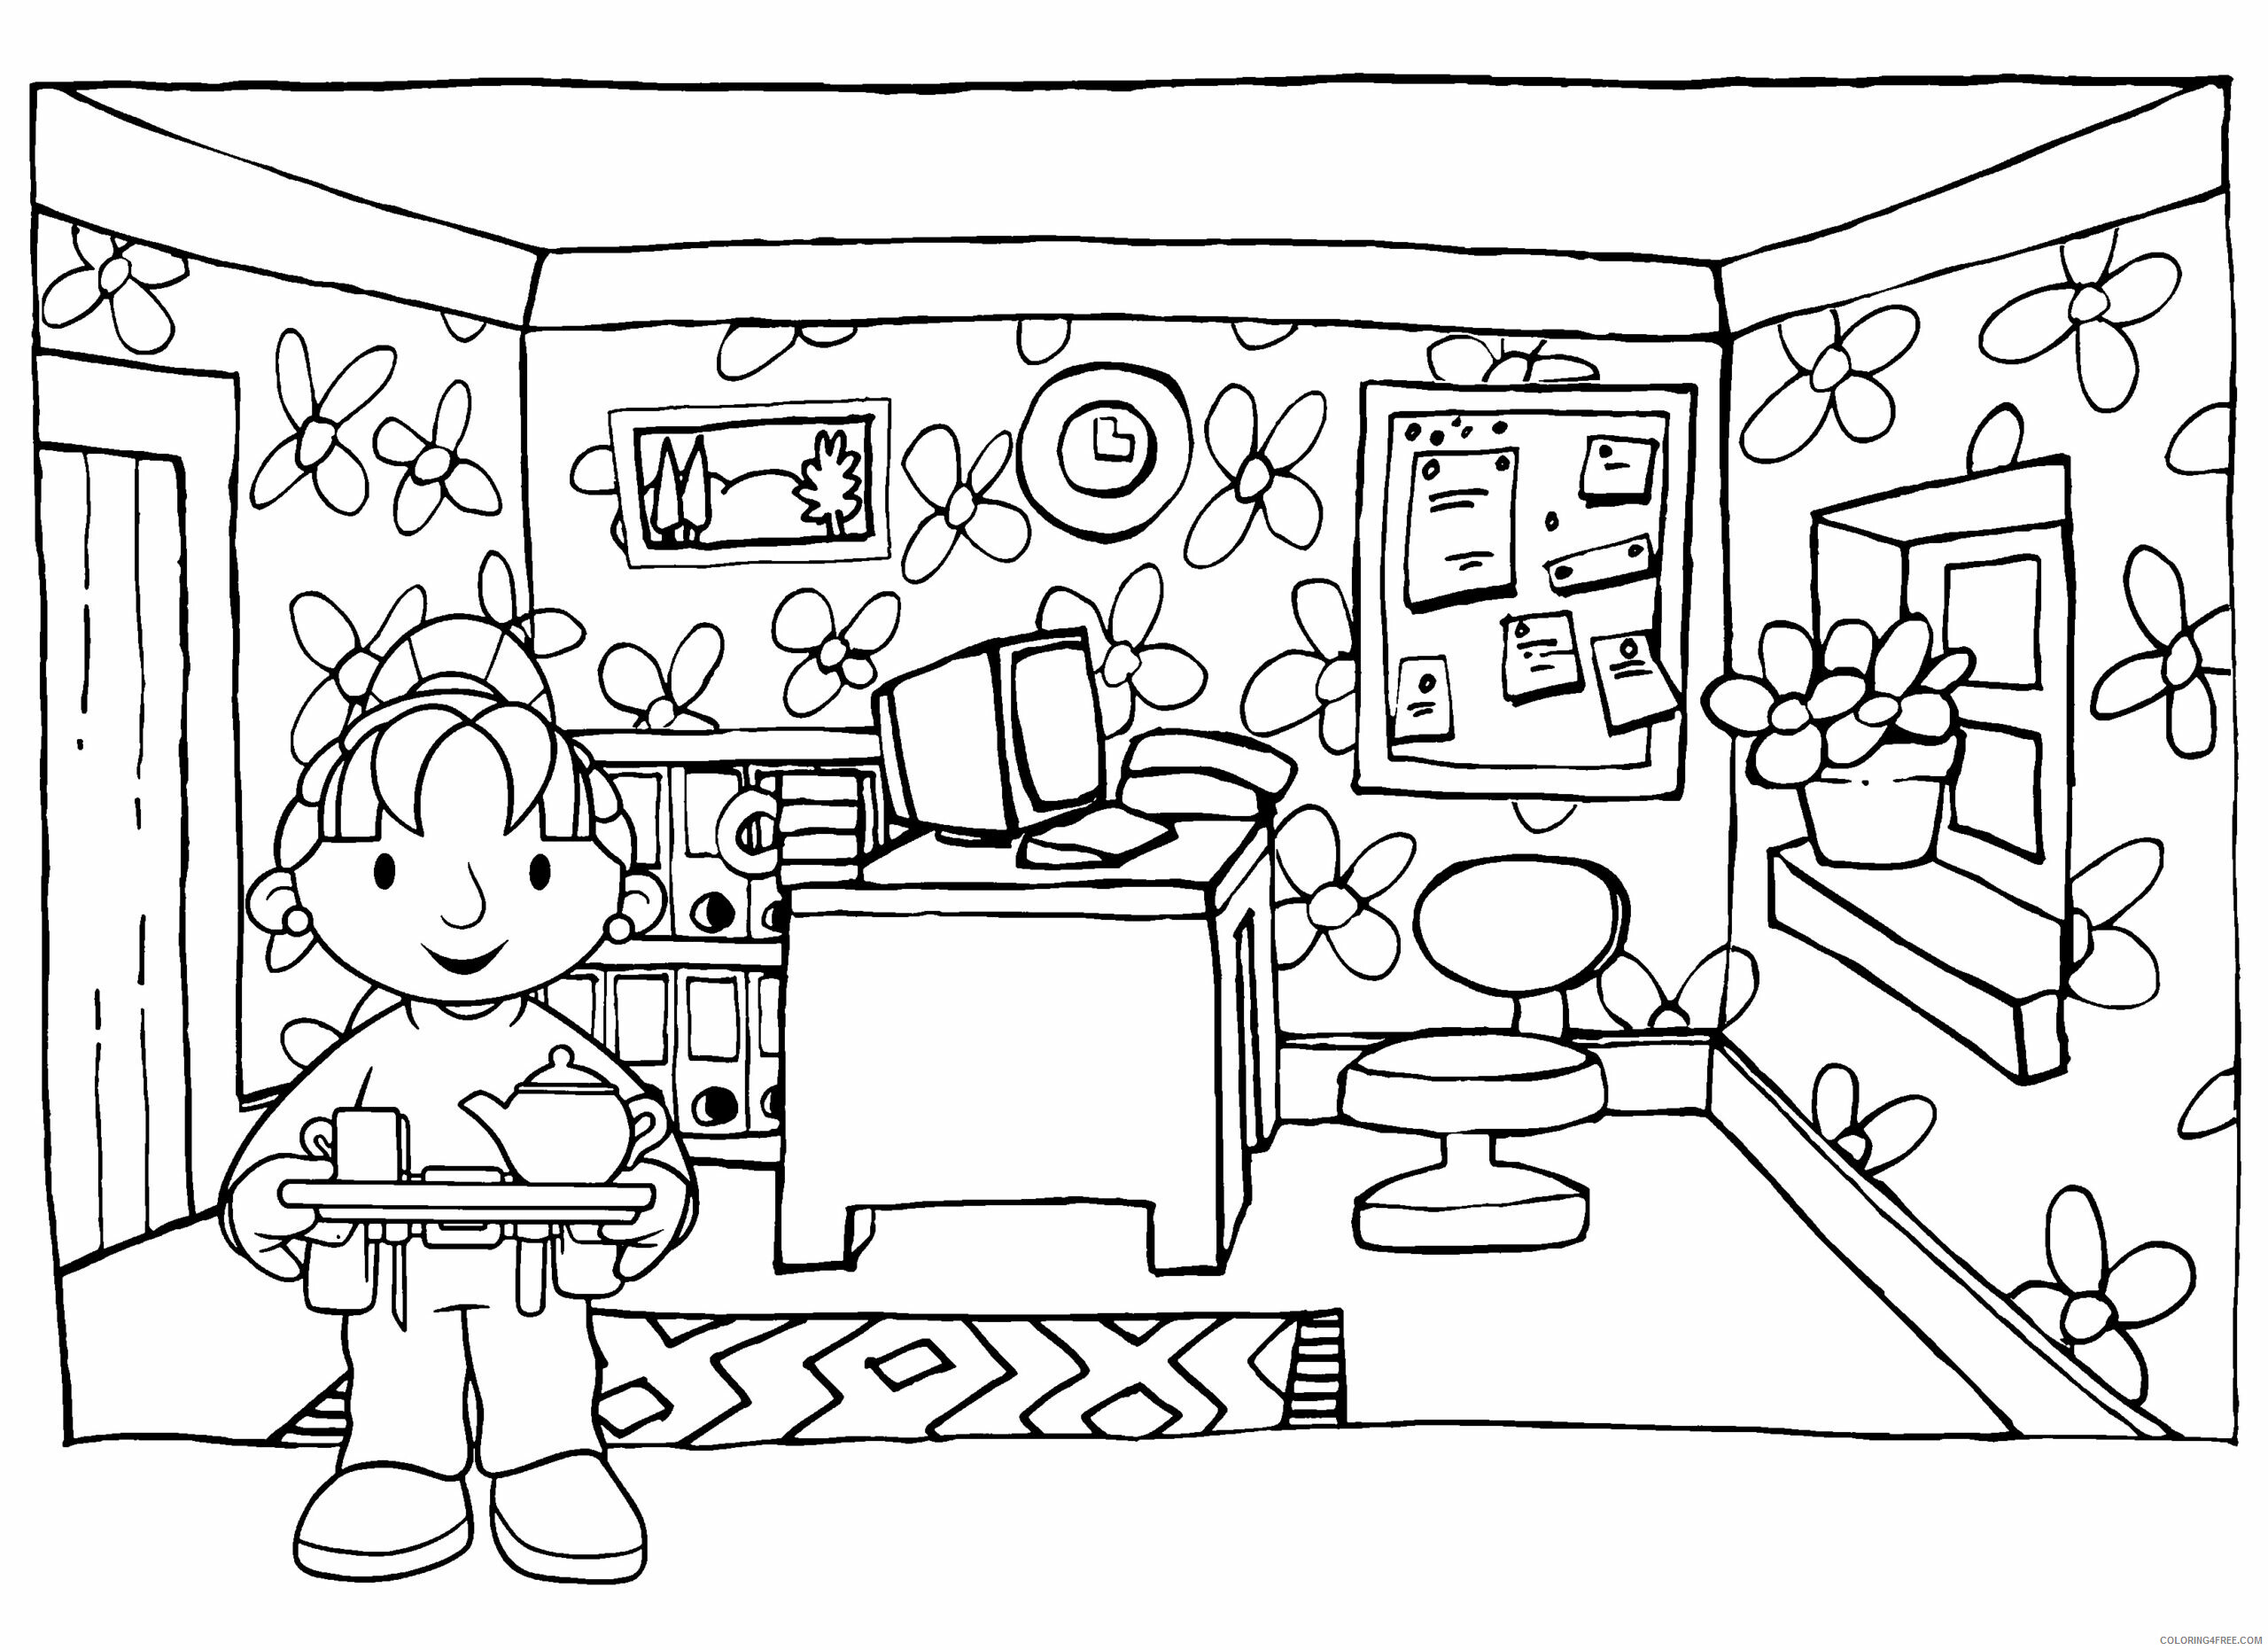 Bob the Builder Coloring Pages TV Film bob the builder 57 Printable 2020 01077 Coloring4free